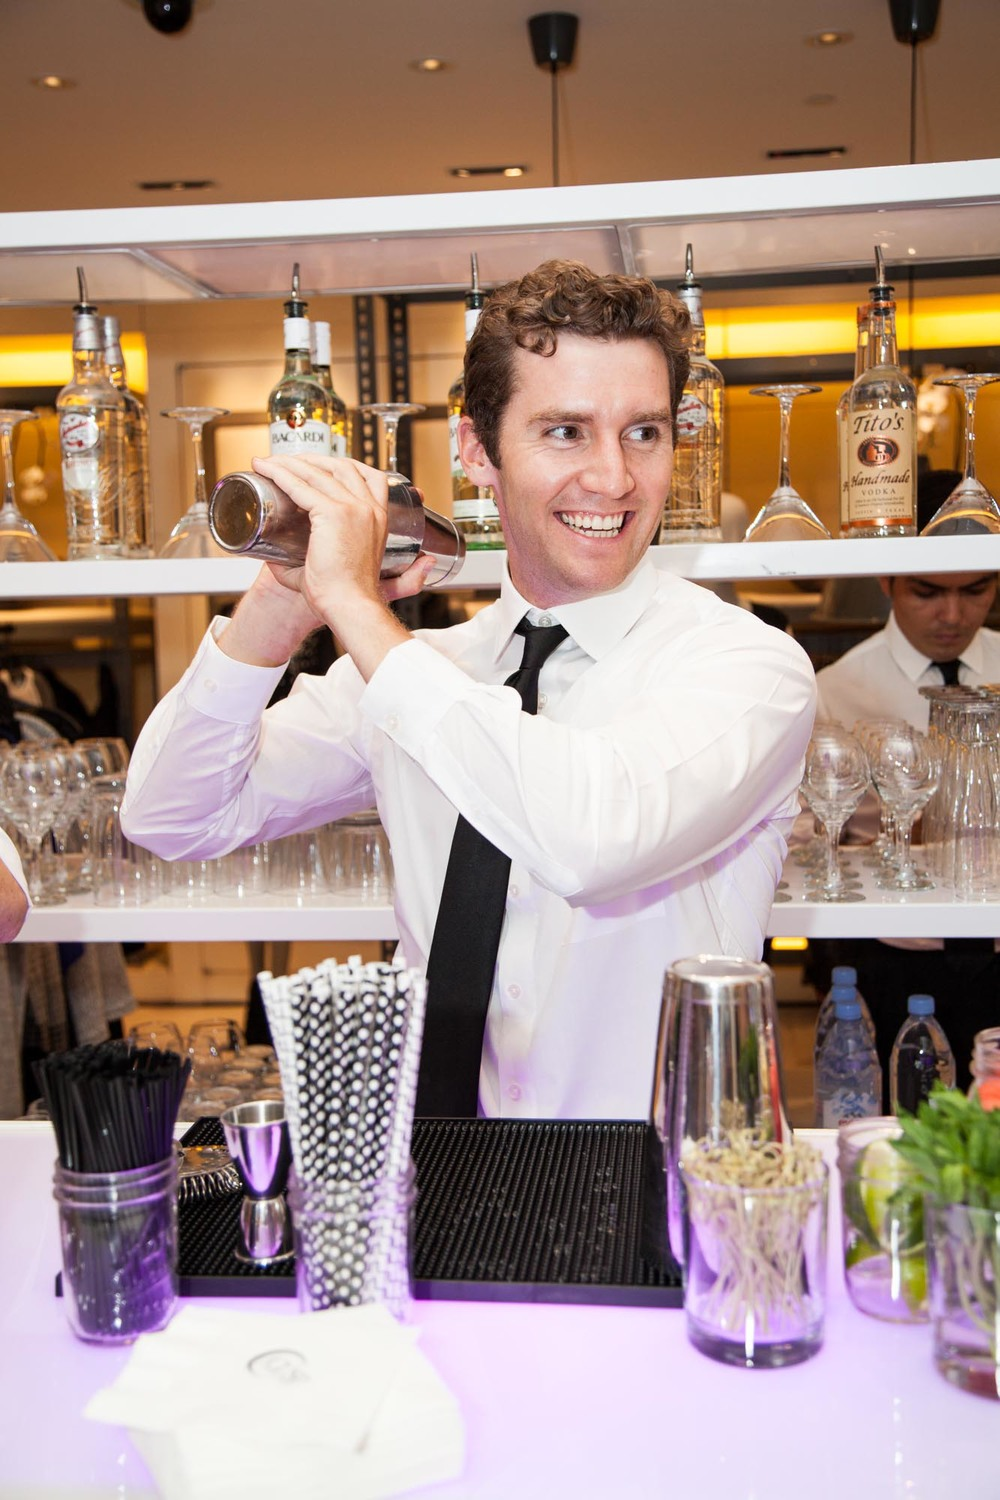 Bartender Photo (2).jpg